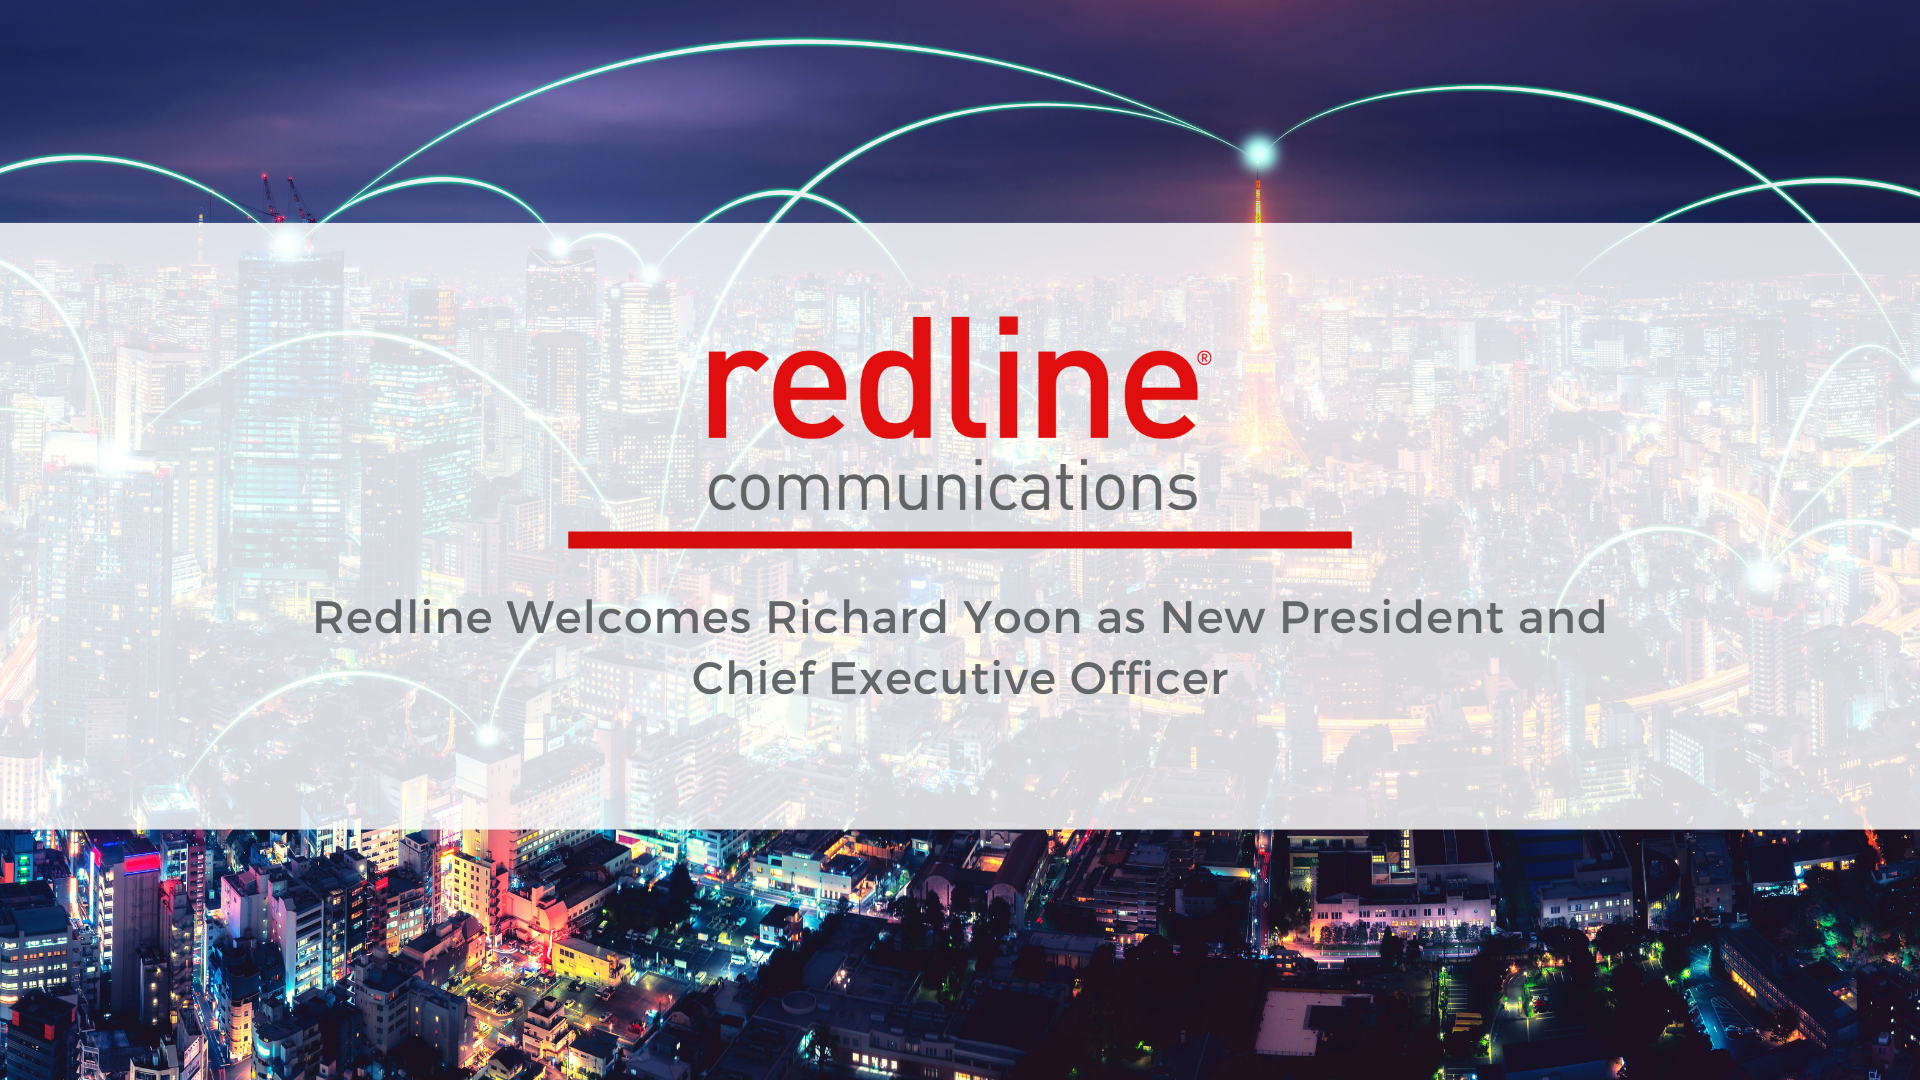 Redline Welcomes Richard Yoon as New President and Chief Executive Officer